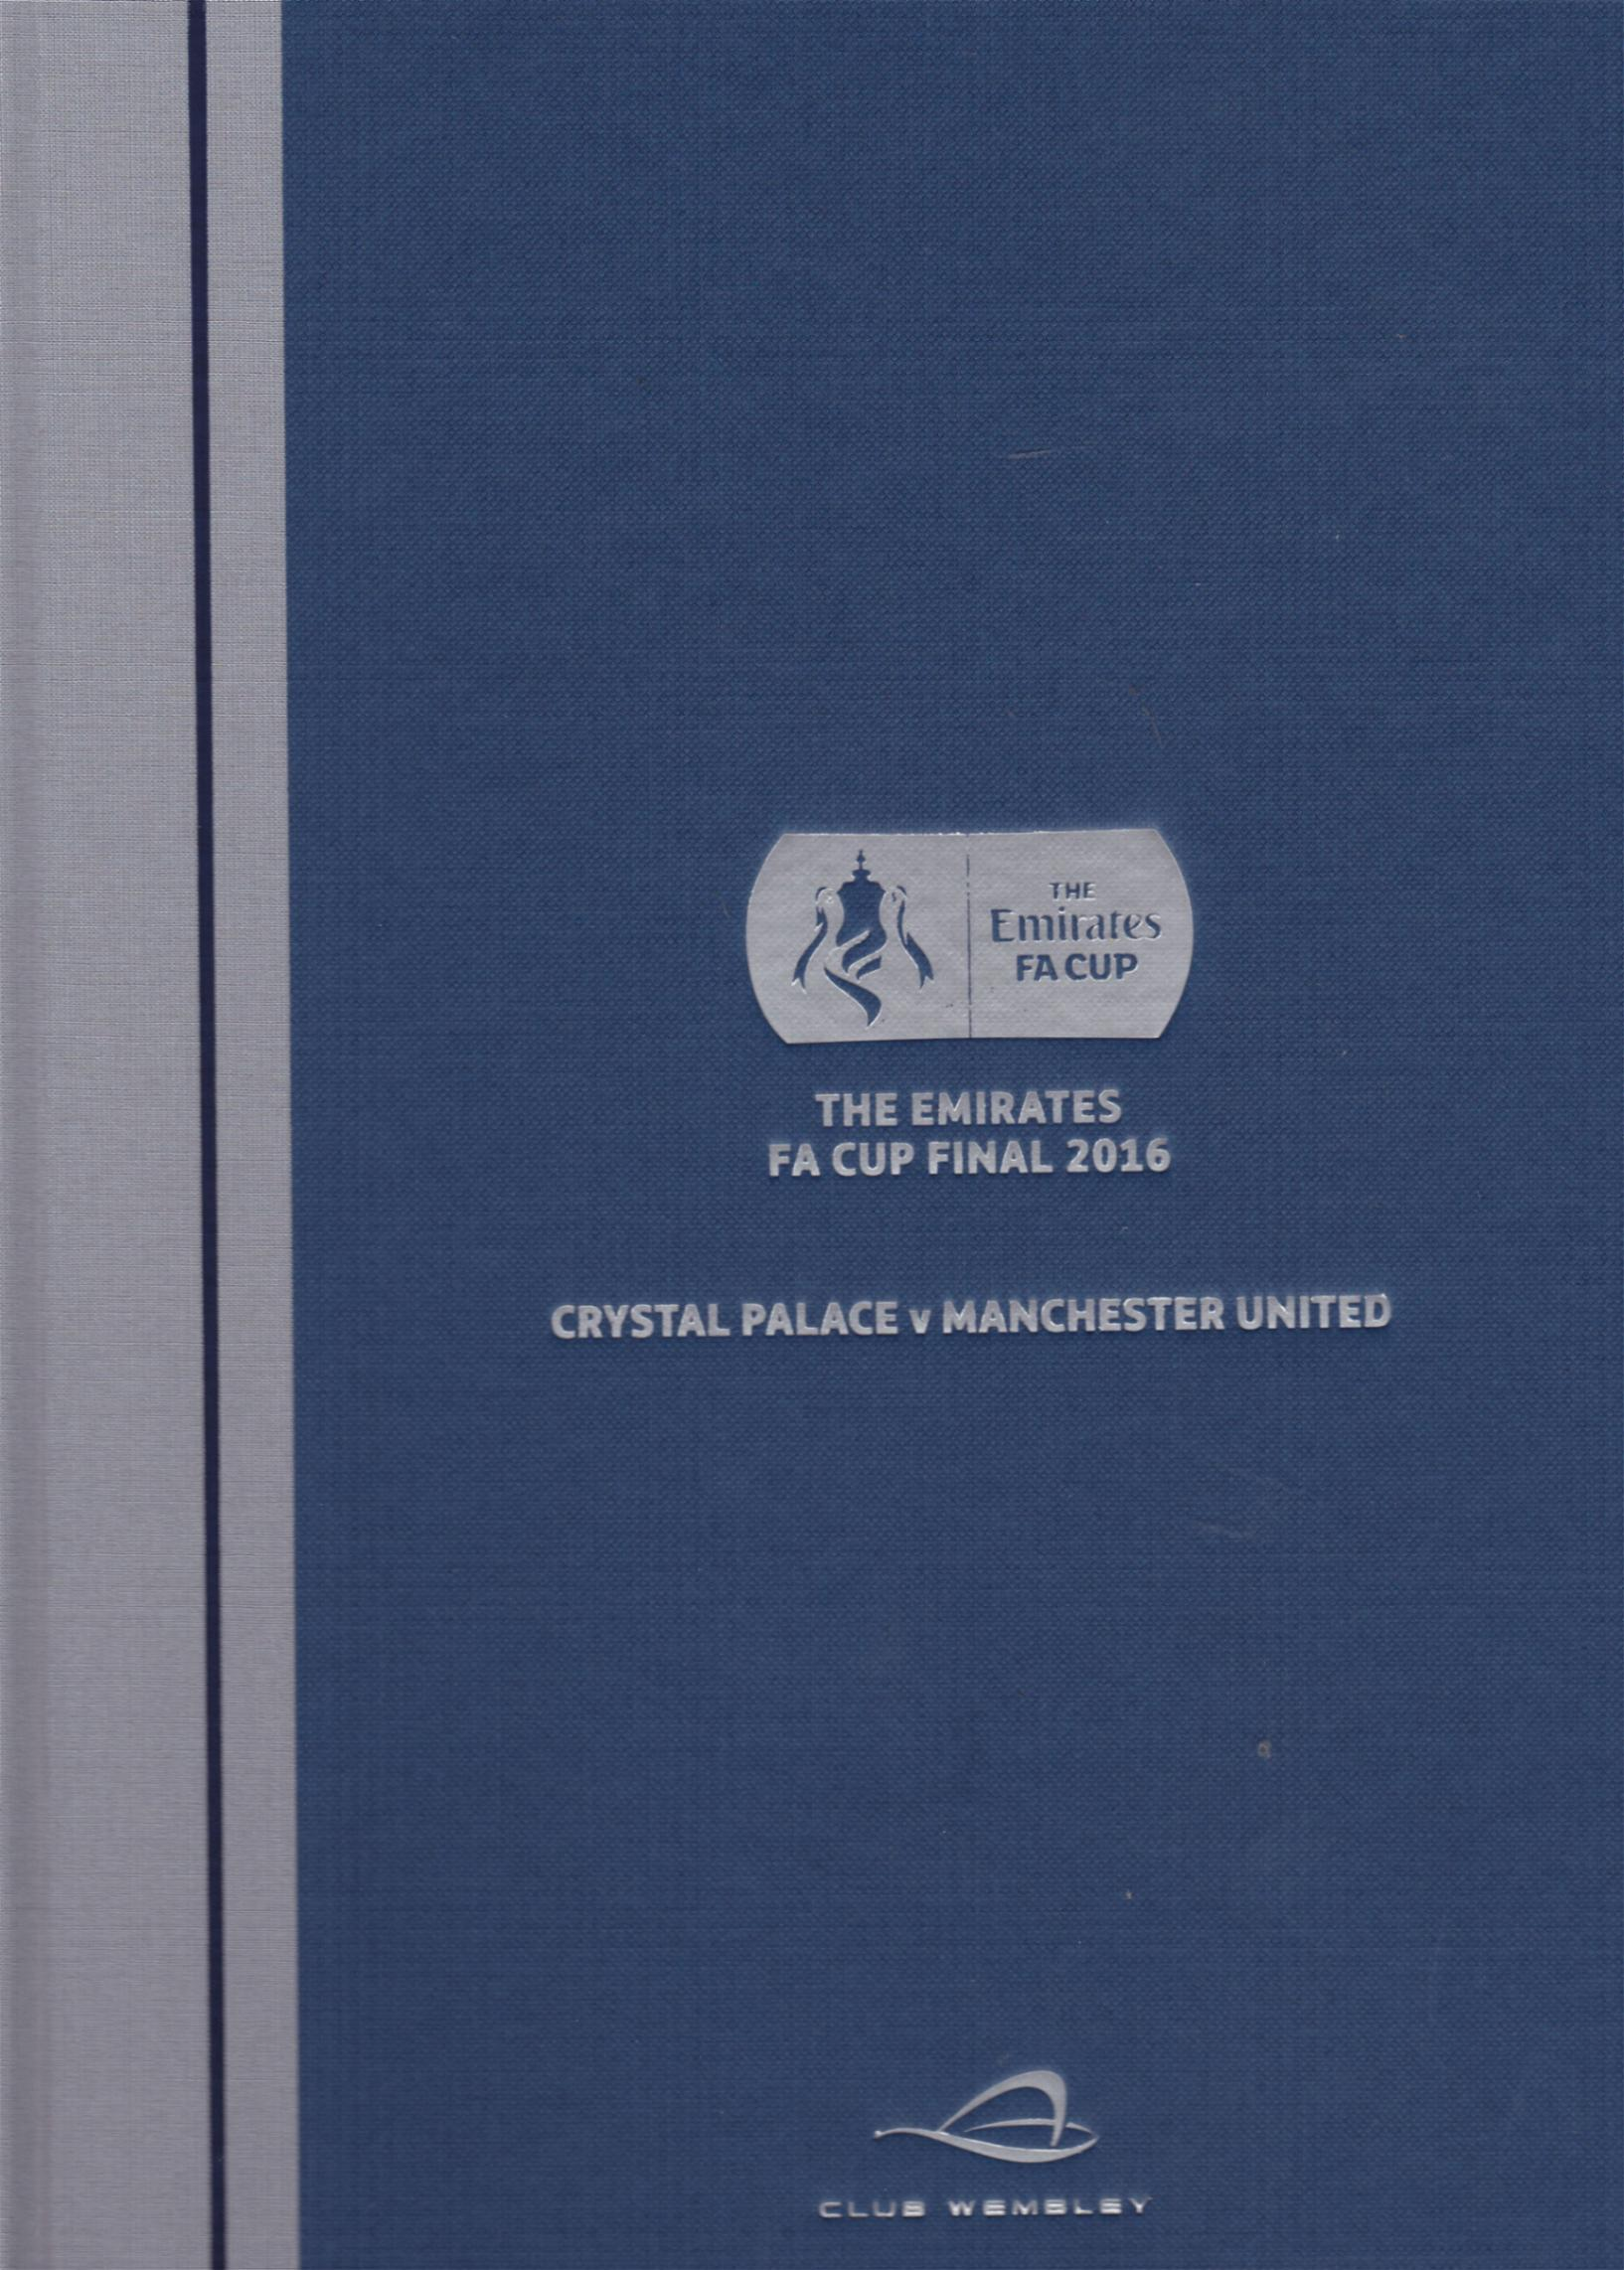 2016 FA CUP FINAL - MAN UTD v CRYSTAL PALACE